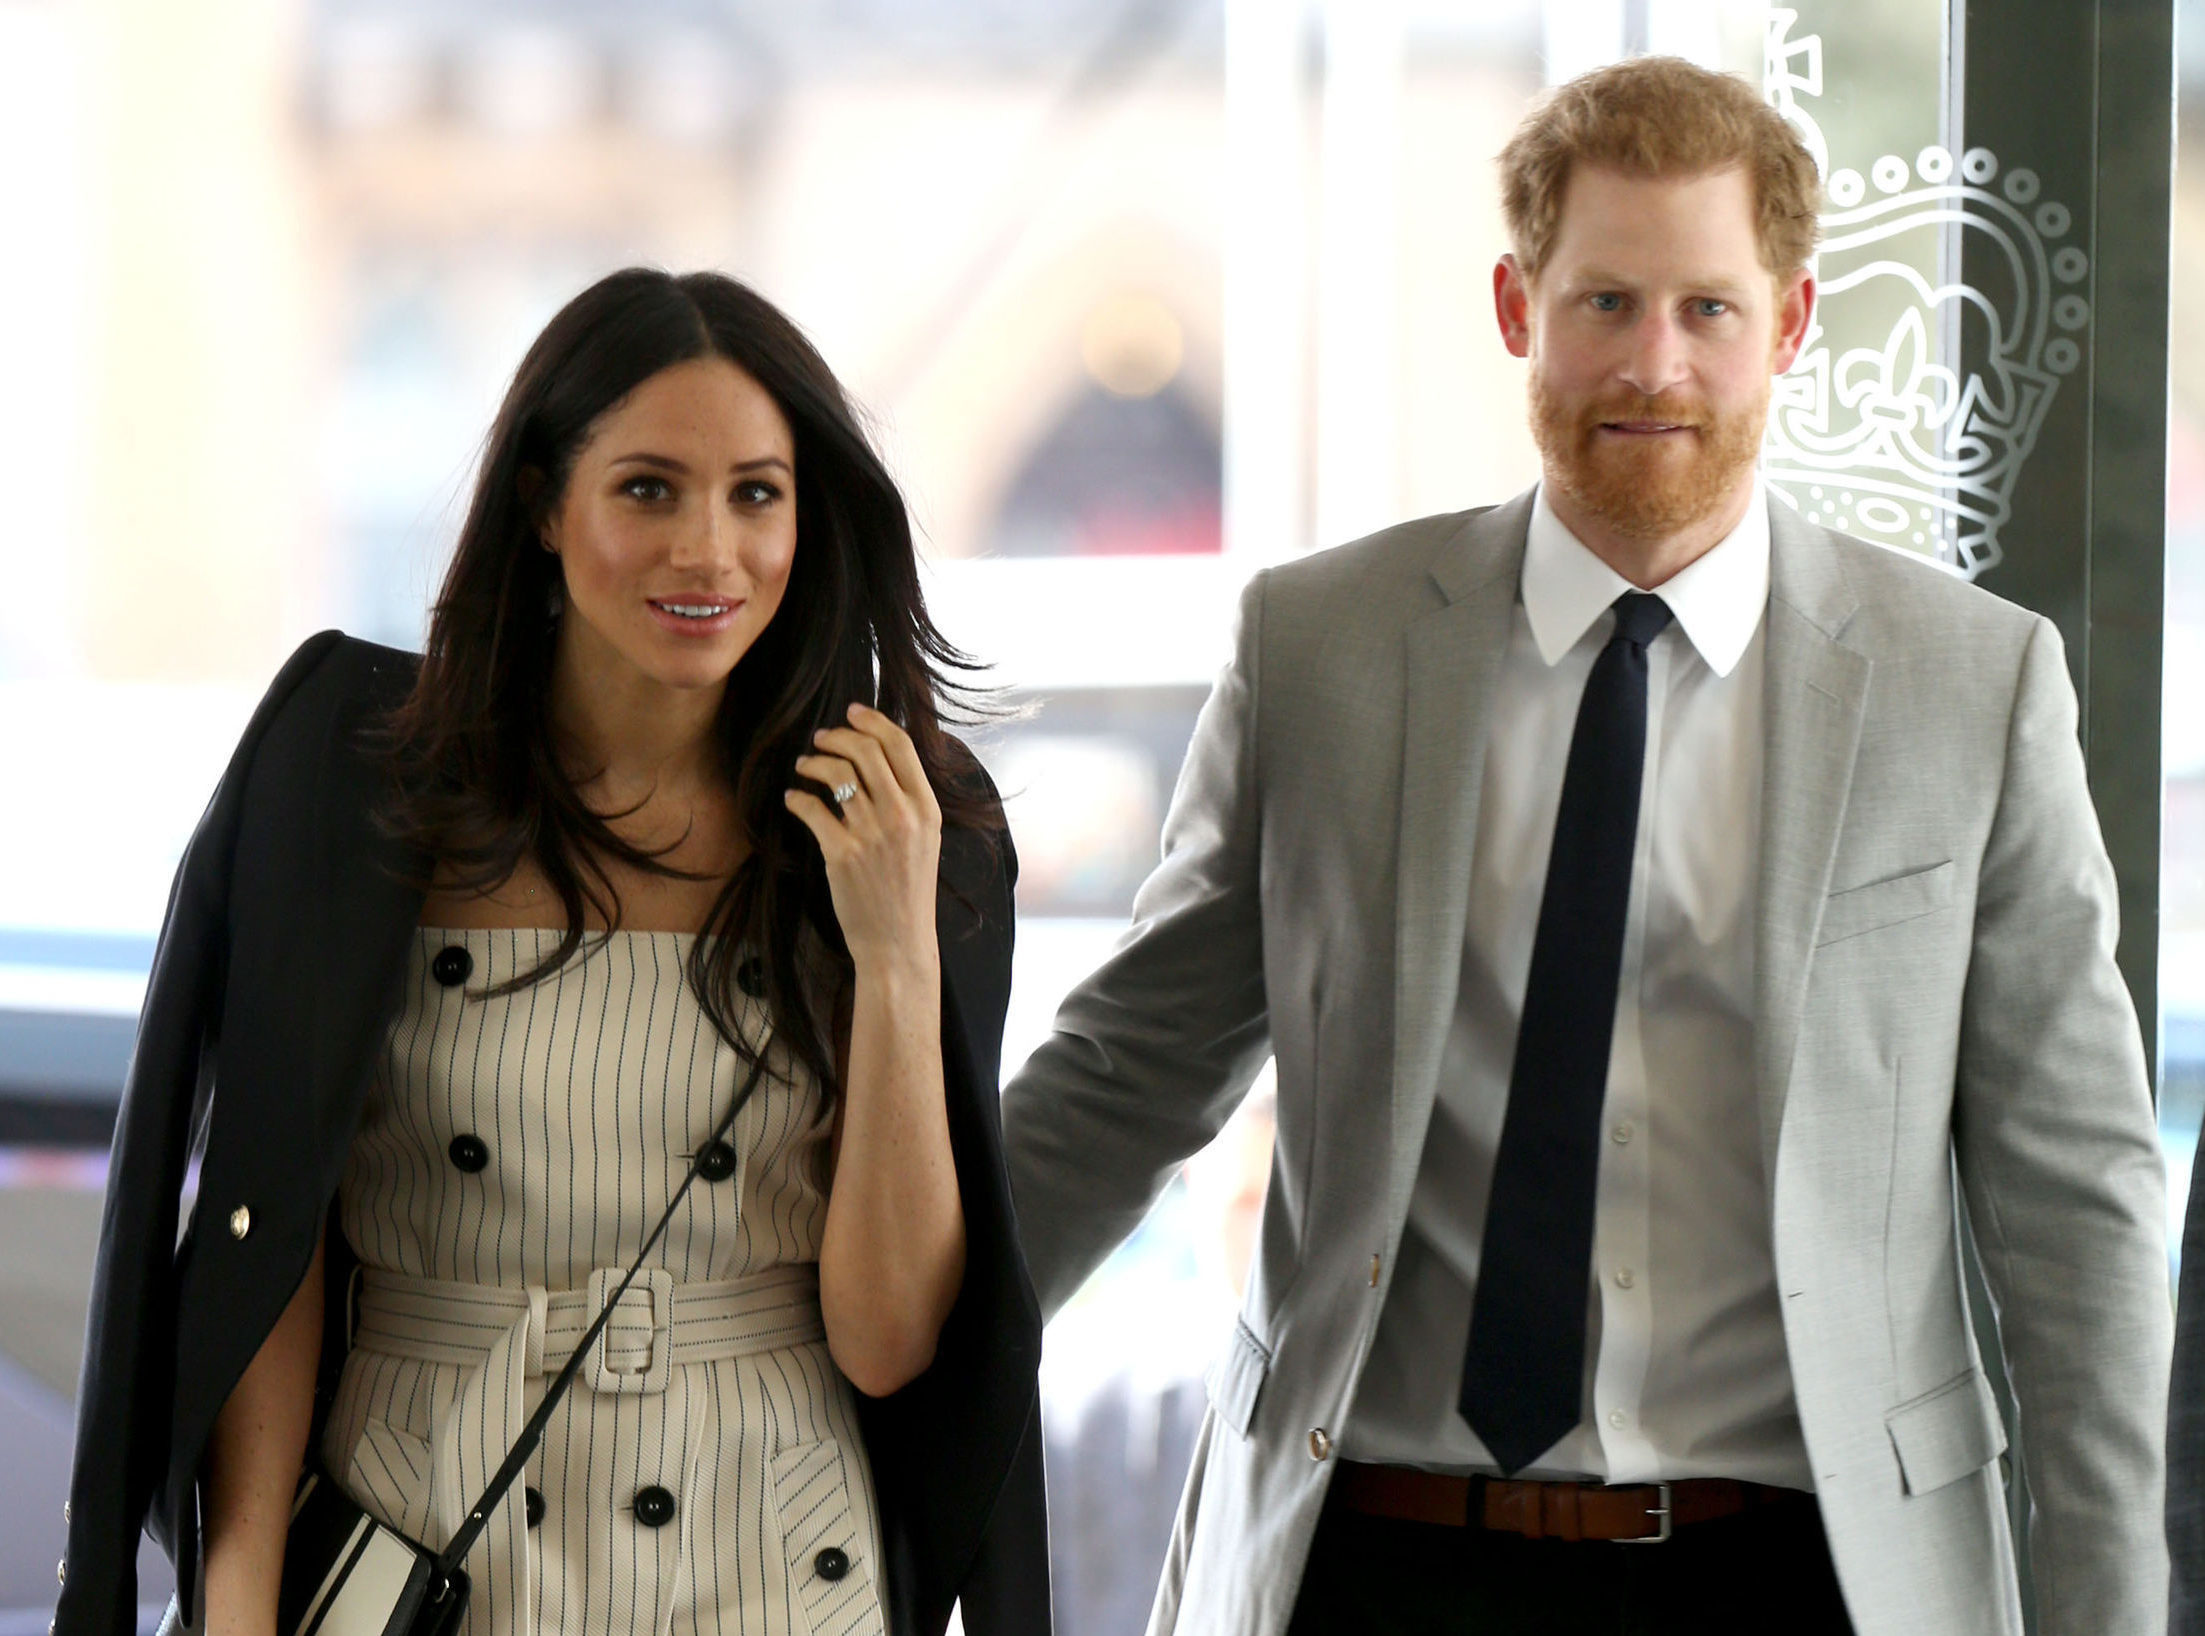 Meghan Markle and Prince Harry arrive at the Queen Elizabeth II Conference Centre in London (Yui Mok/PA)